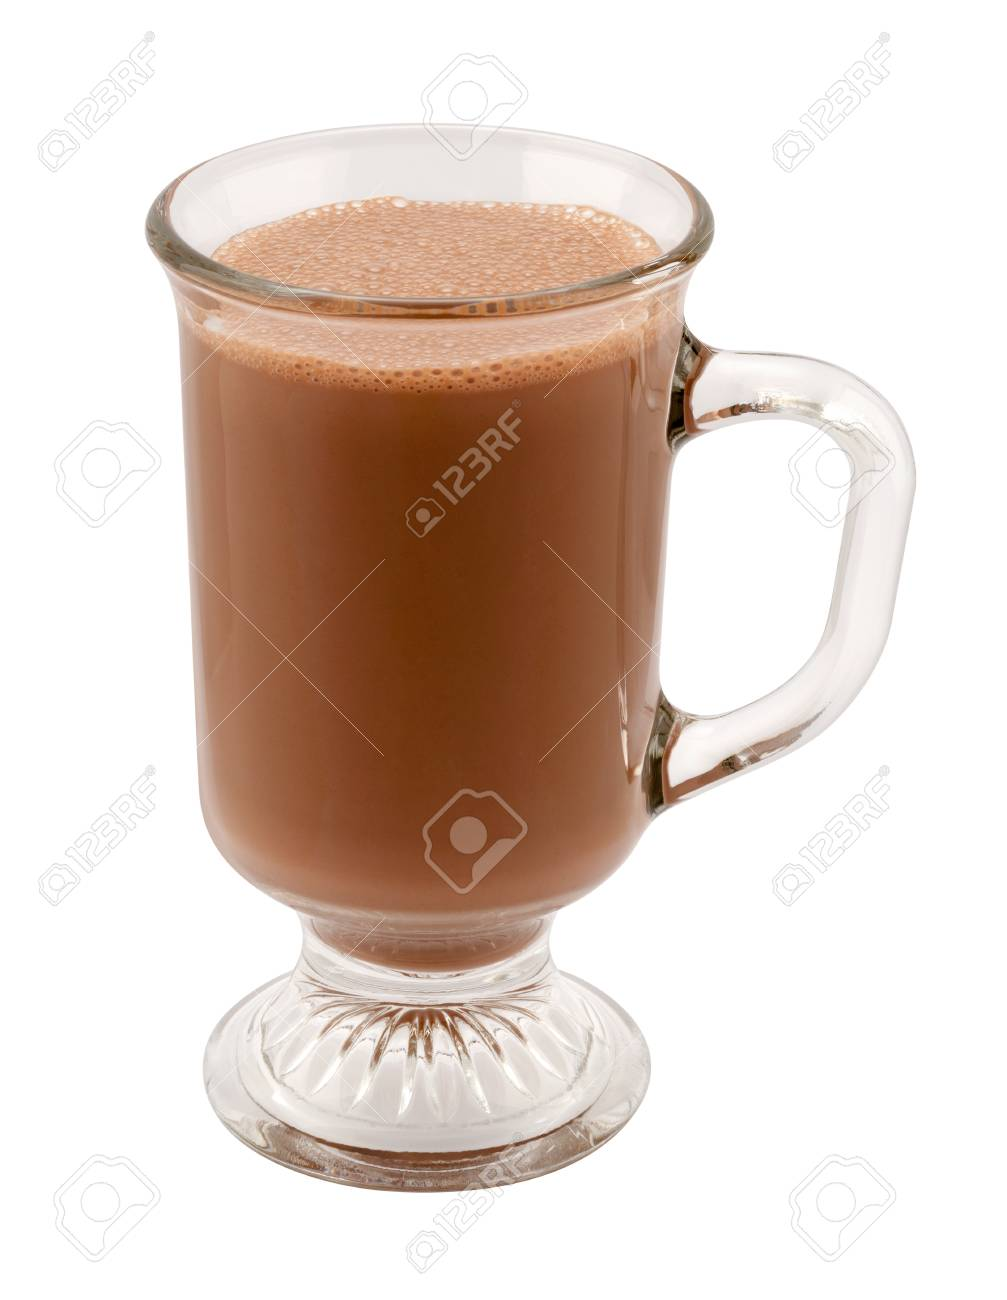 Hot Chocolate In A Glass Mug The Image Is A Cut Out Isolated Stock Photo Picture And Royalty Free Image Image 49687574